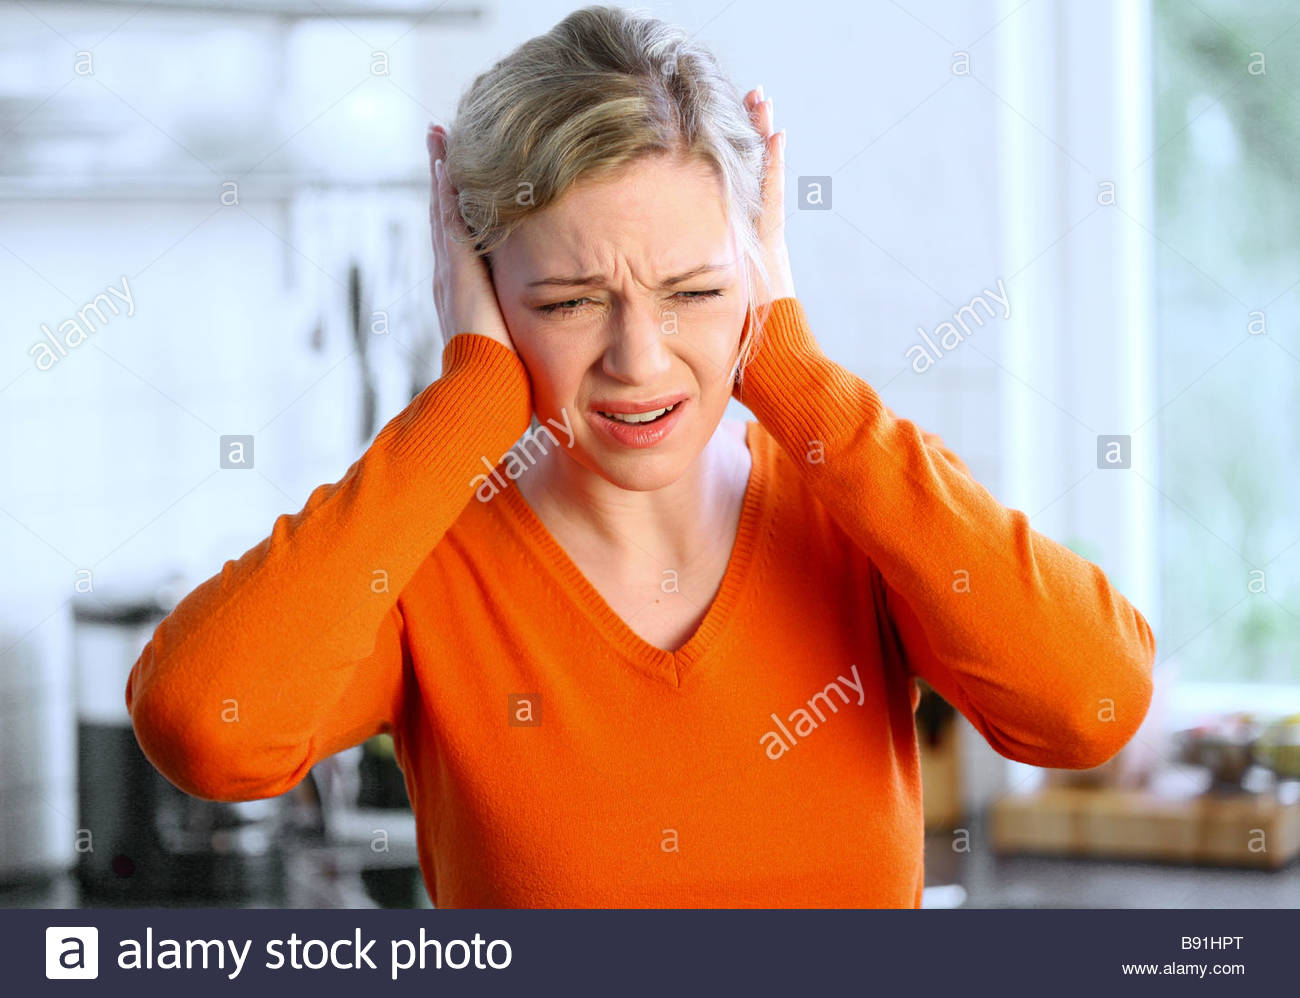 young blonde woman covering her ears with hands - Stock Image